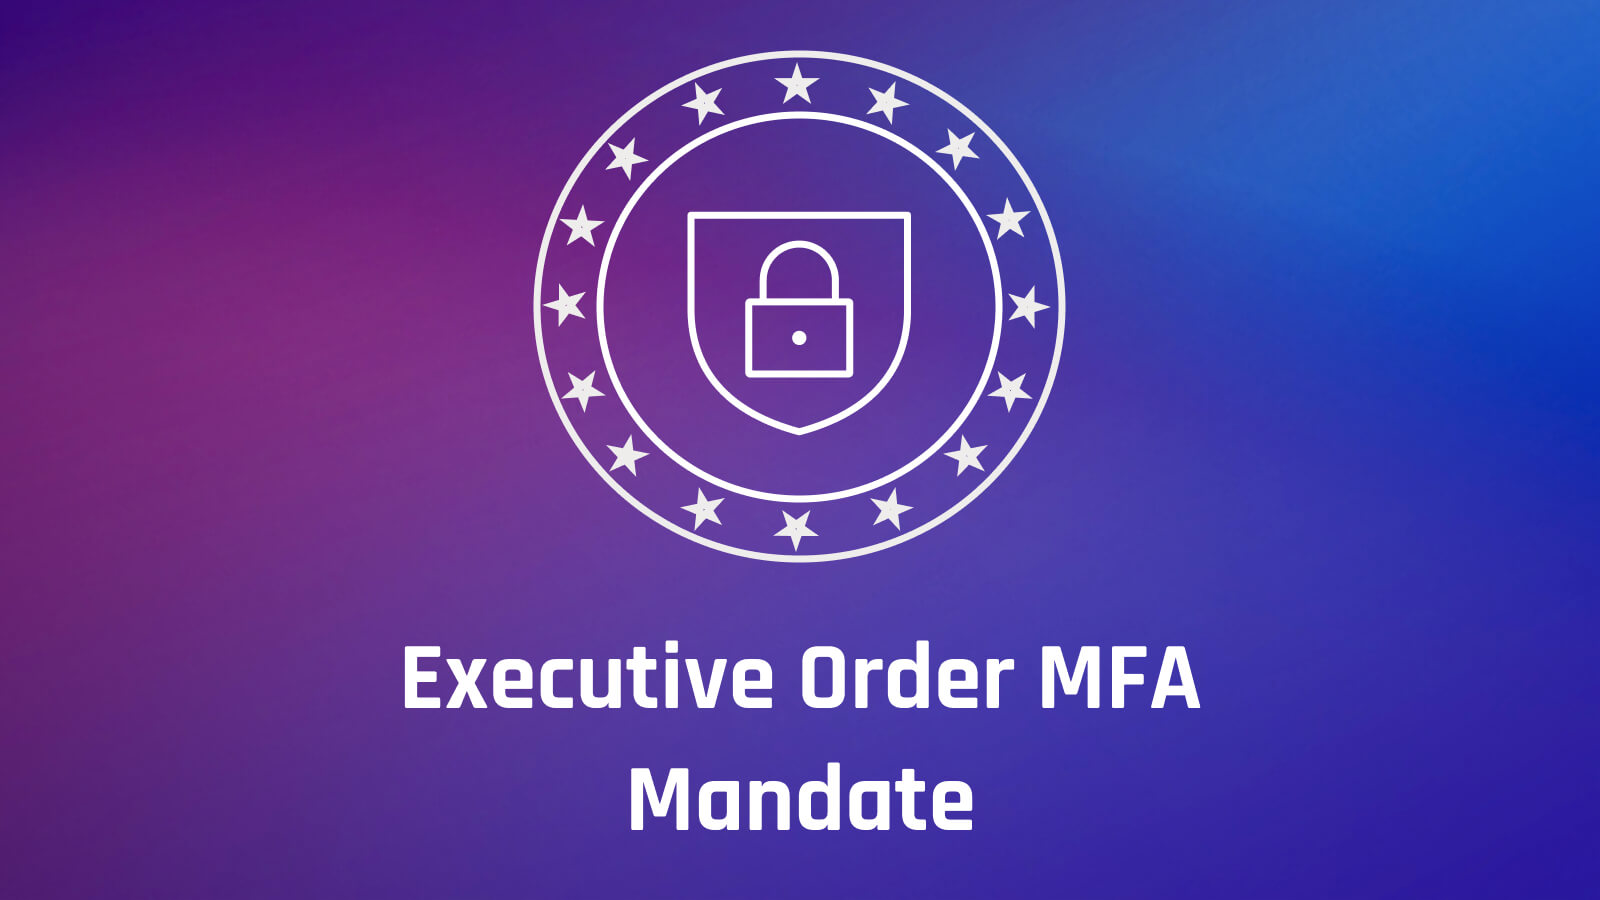 Complying with the Cybersecurity Executive Order Zero Trust, MFA Mandate